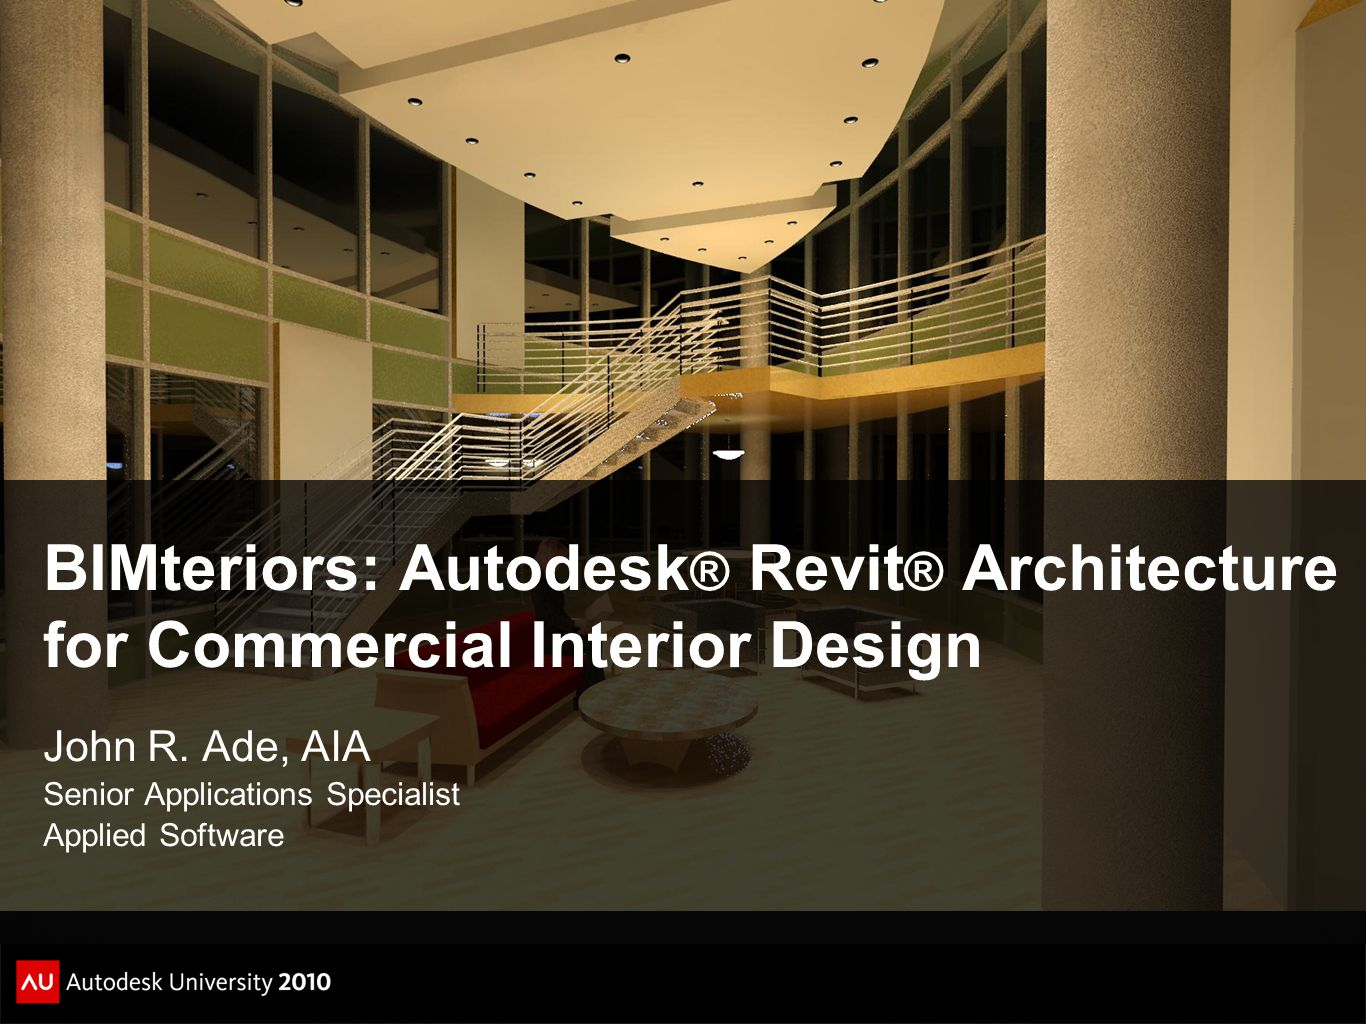 bimteriors autodesk revit architecture for commercial interior design - Interior Design Applications